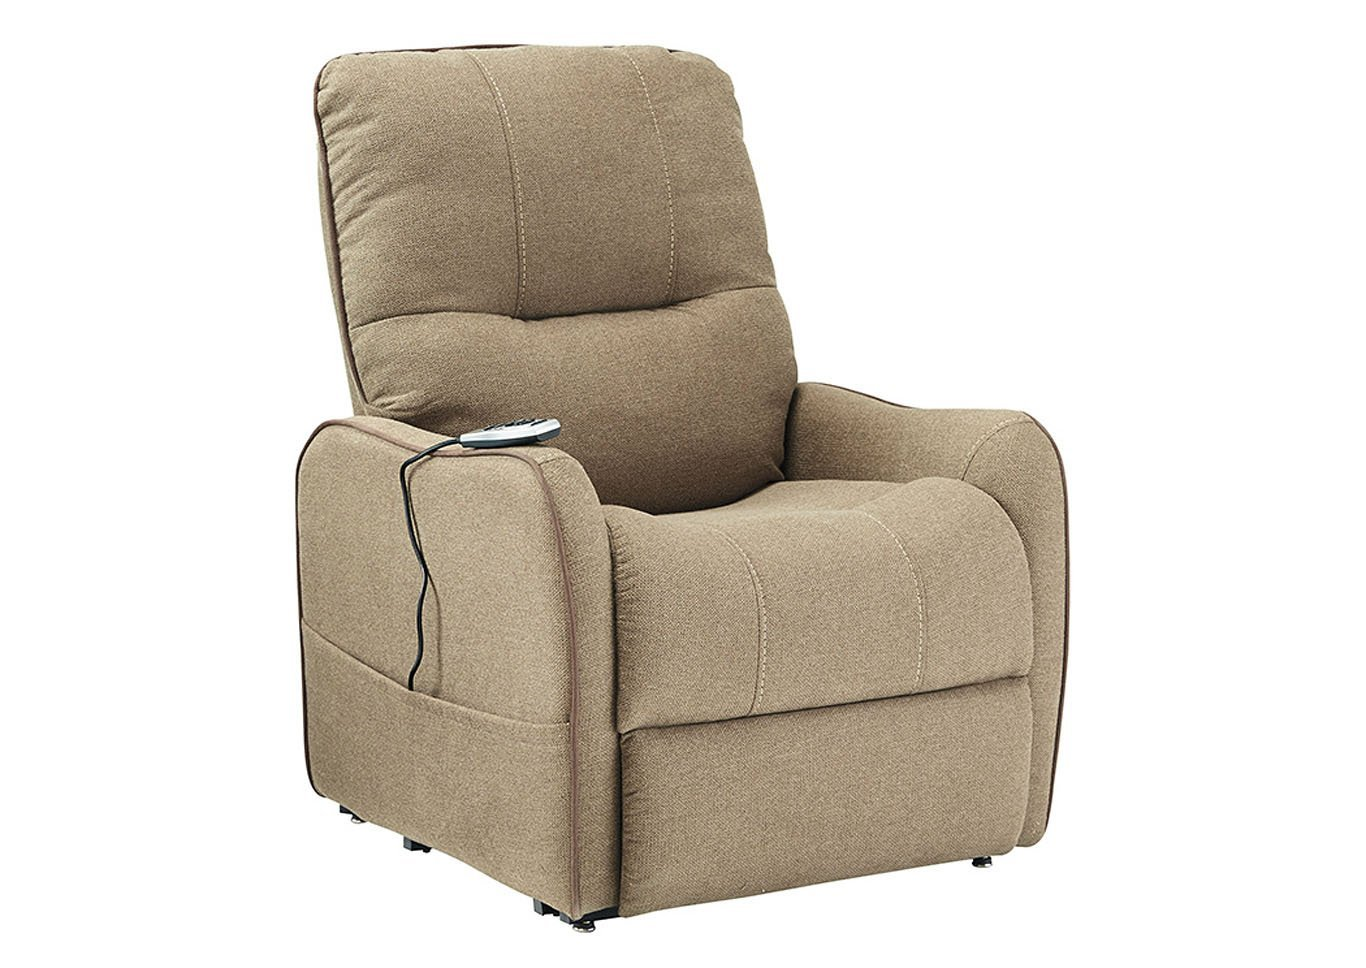 Top 10 Most Comfortable Sofas Reviews Top Best Pro Reviews